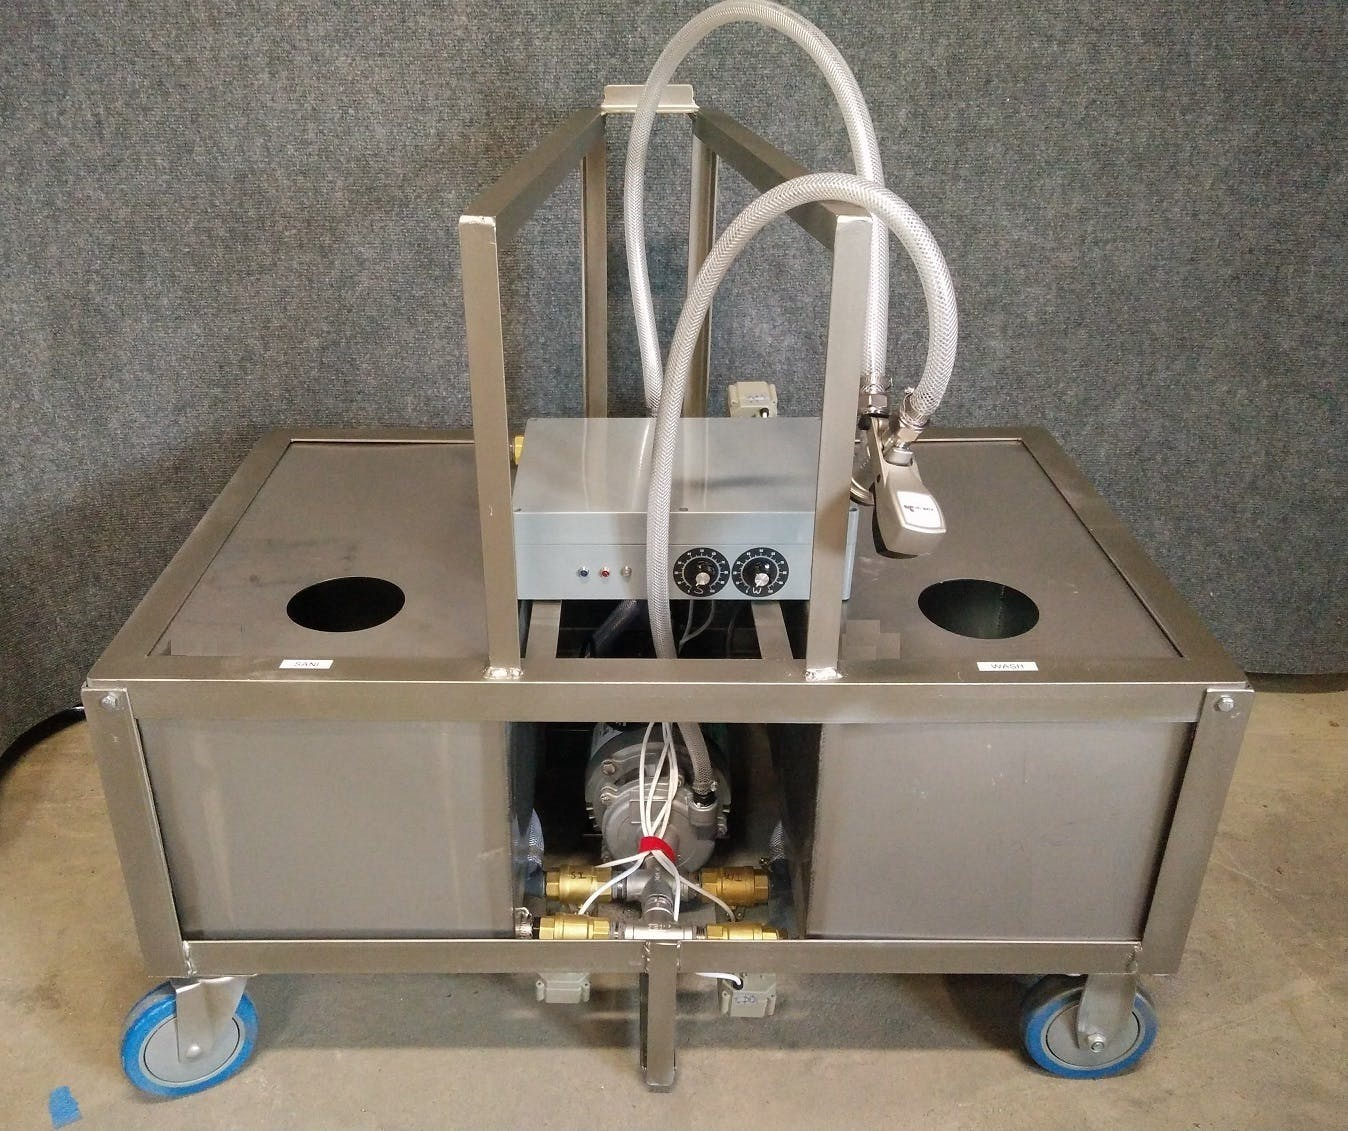 SINGLE HEAD Keg washer sold by Noble Keg Washer